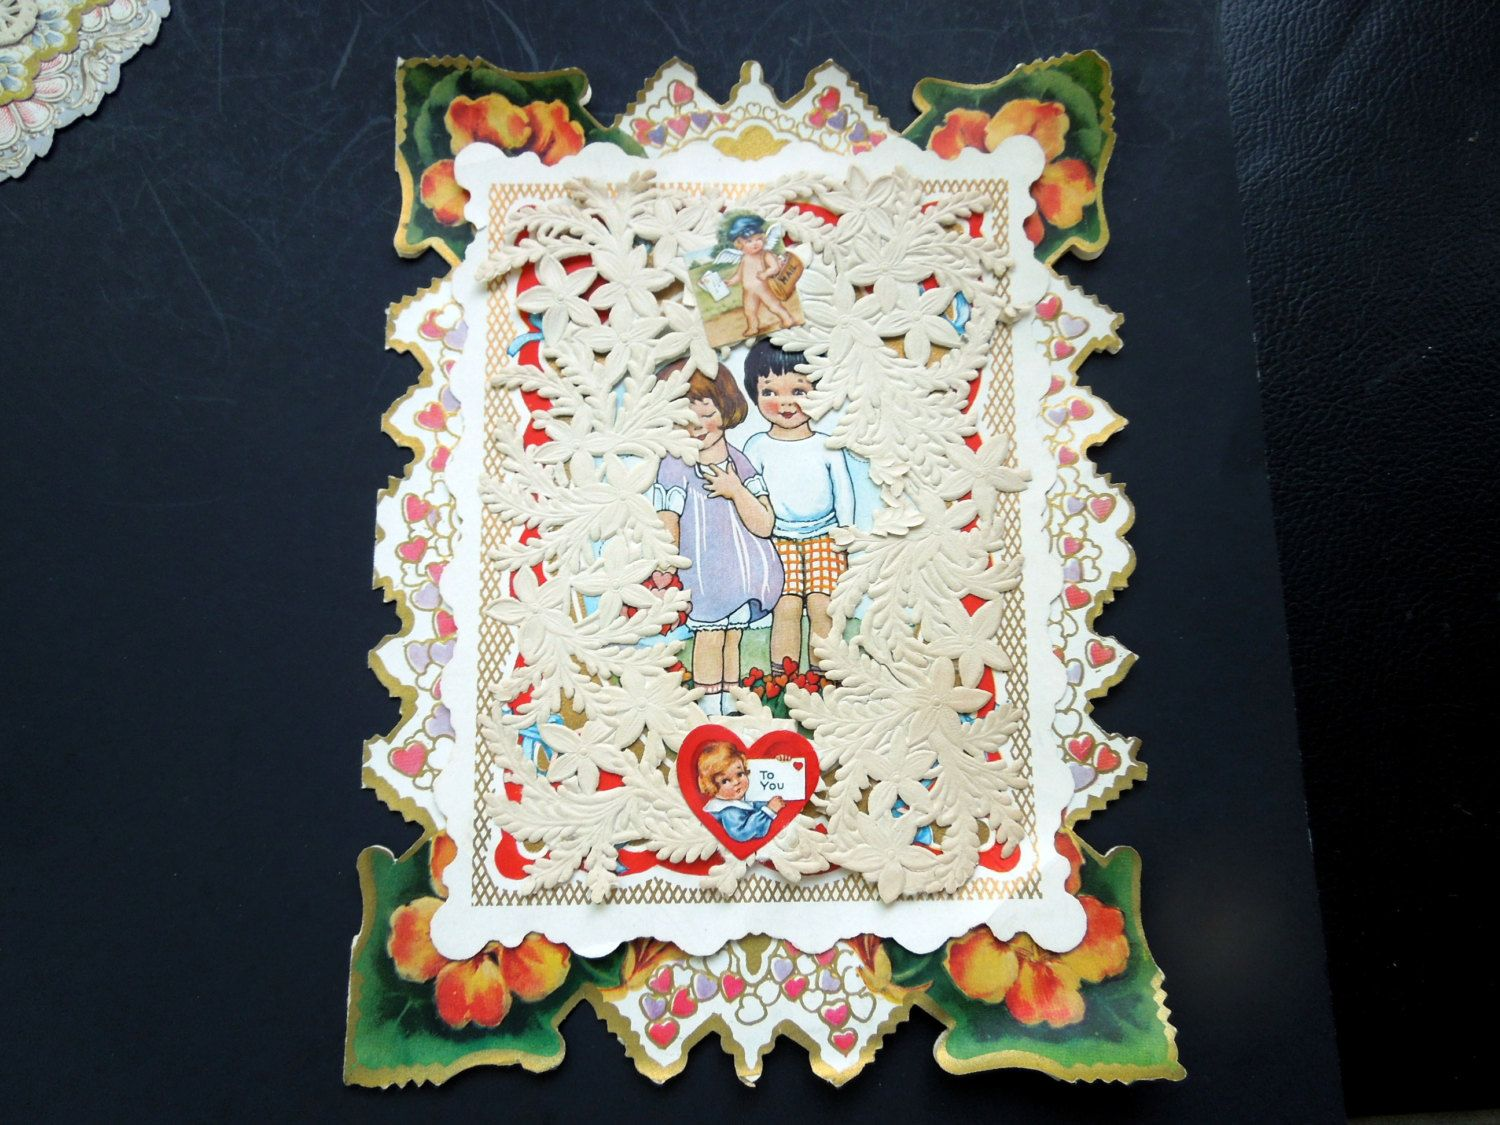 Victorian Edwardian Valentine Card Pop Up Die Cut 3D Embossed Lace Ephemera Boy Girl Wedding Anniversary Birthday Collector Gift by Passion4Europe on Etsy